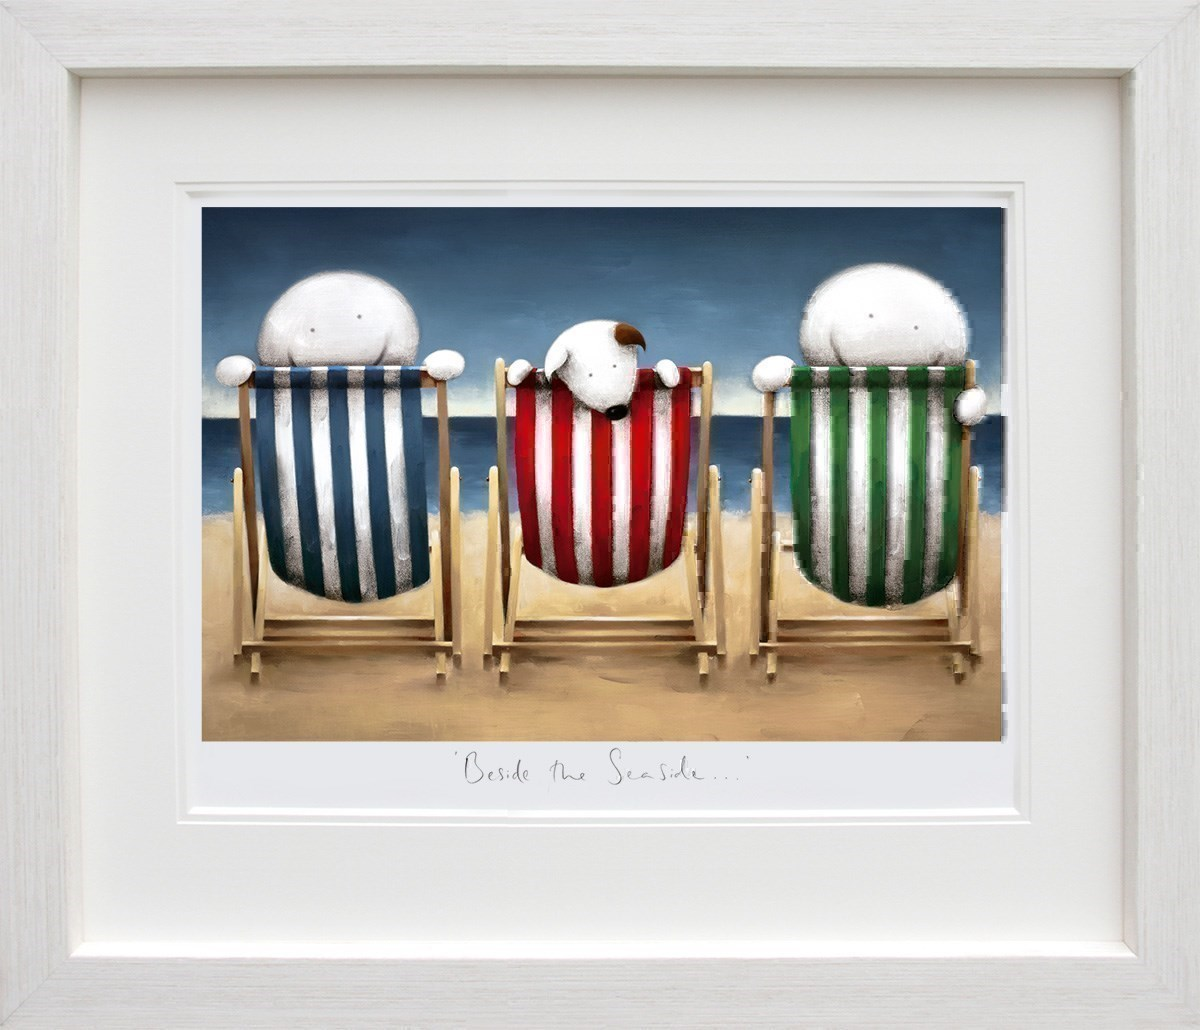 Beside the Seaside by Doug Hyde - Limited Edition on Paper sized 26x17 inches. Available from Whitewall Galleries